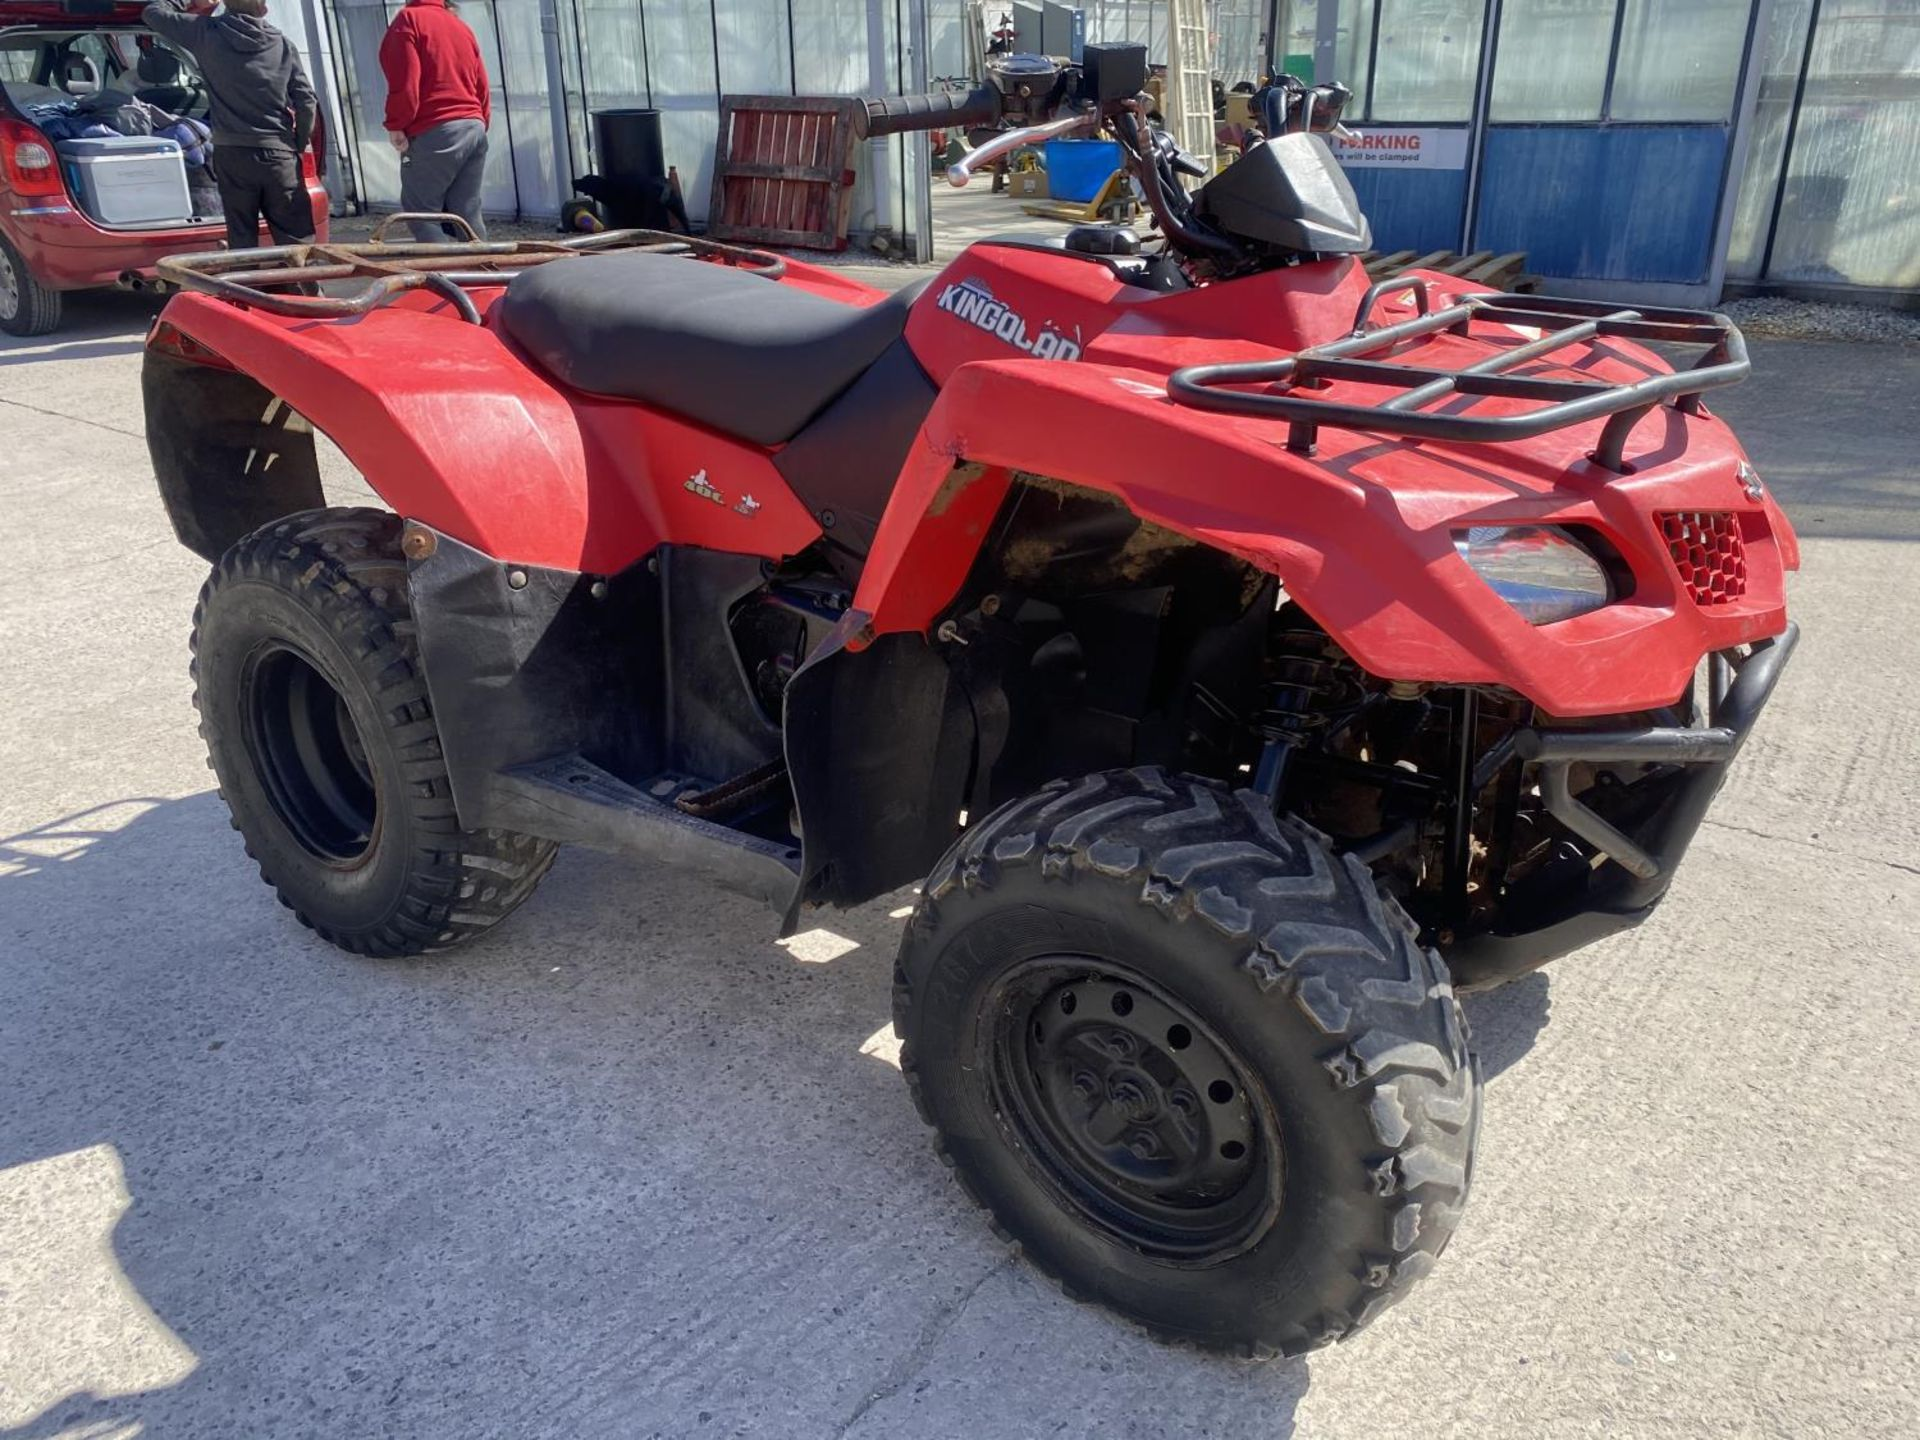 A 2013 SUZUKI KING QUAD, 400 CC AUTOMATIC - SEE VIDEO OF VEHICLE STARTING AND RUNNING - NO VAT - Image 4 of 12